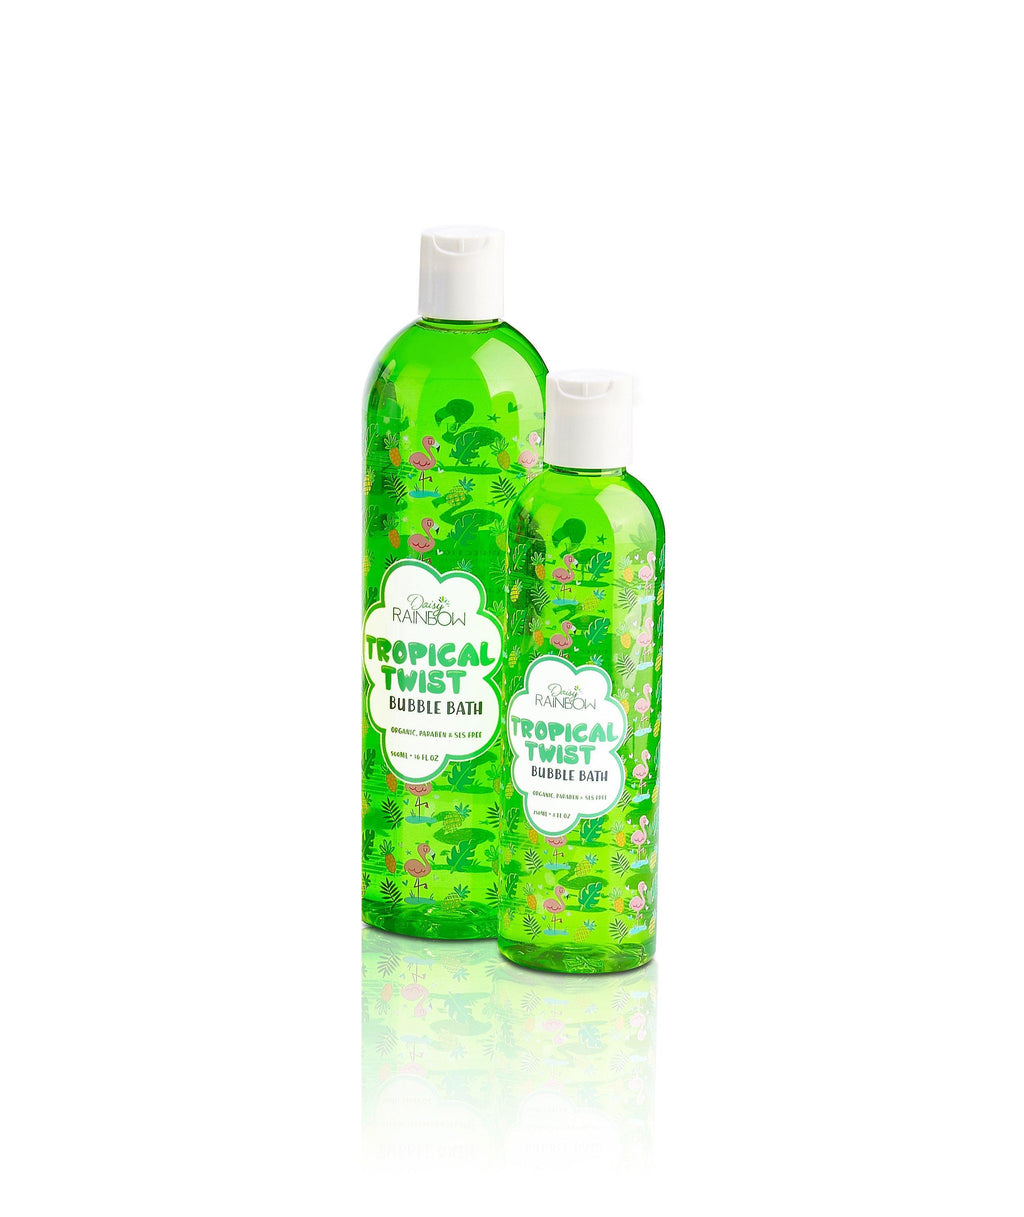 Daisy Rainbow Tropical Twist Bubble Bath - 500ml - Mrs Best Paper Co.